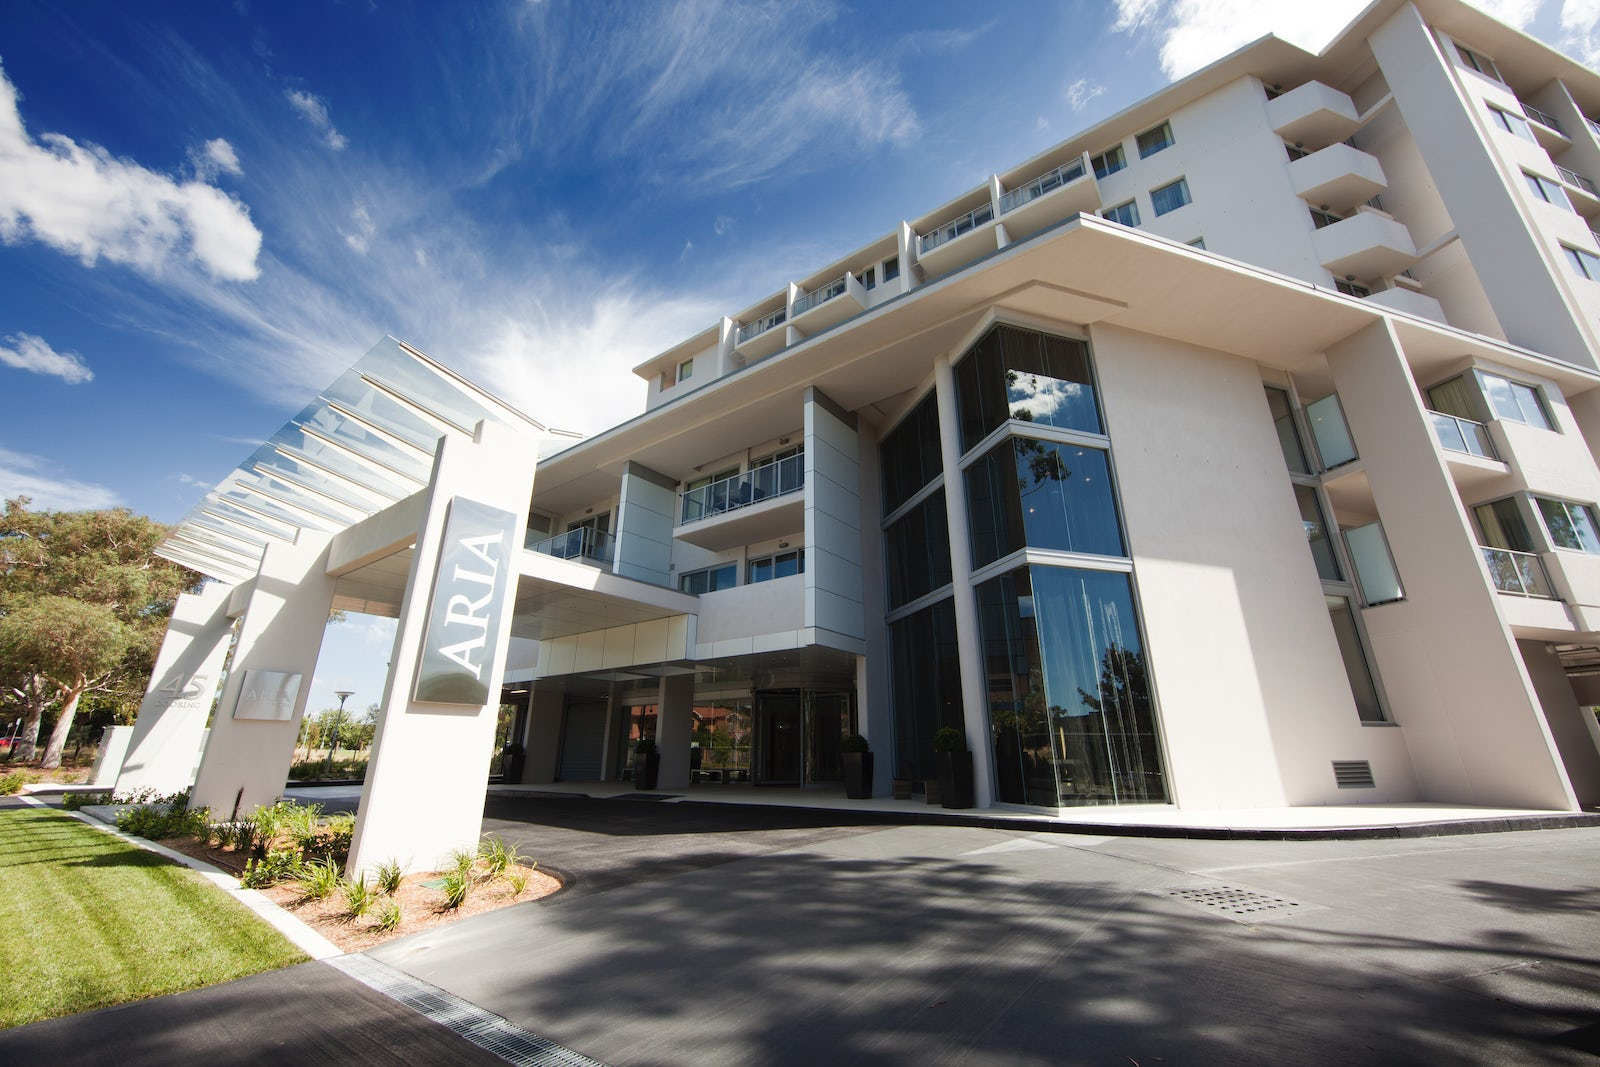 Picture of the stylish Aria Hotel in Canberra